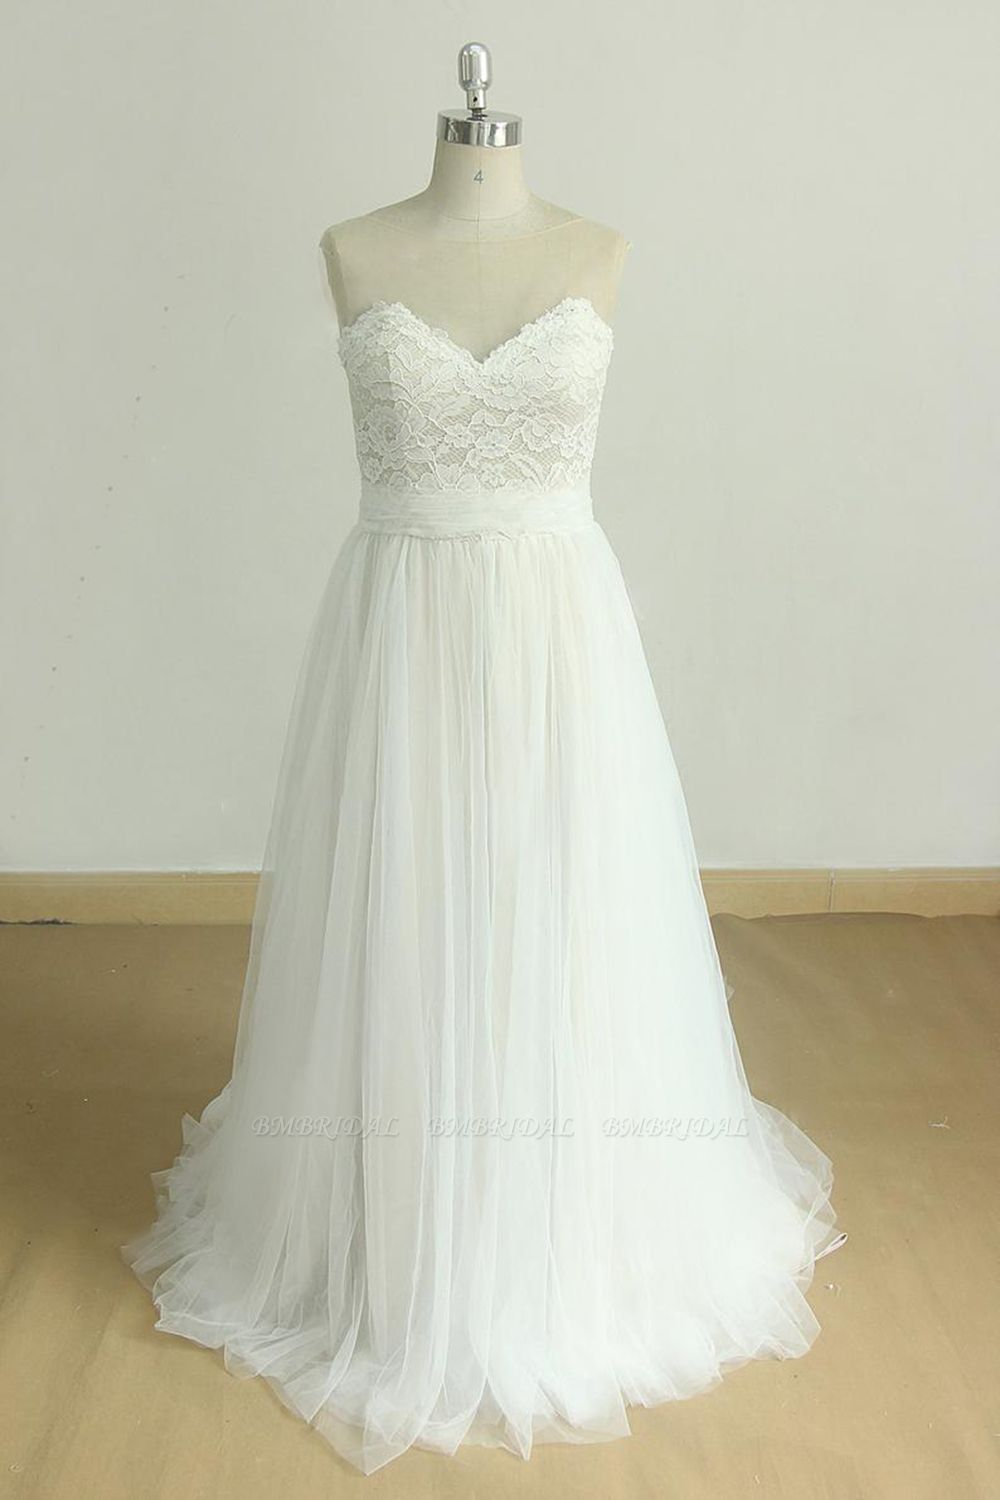 BMbridal Chic Sweetheart Lace Wedding Dress A-line White Tulle Bridal Gowns On Sale